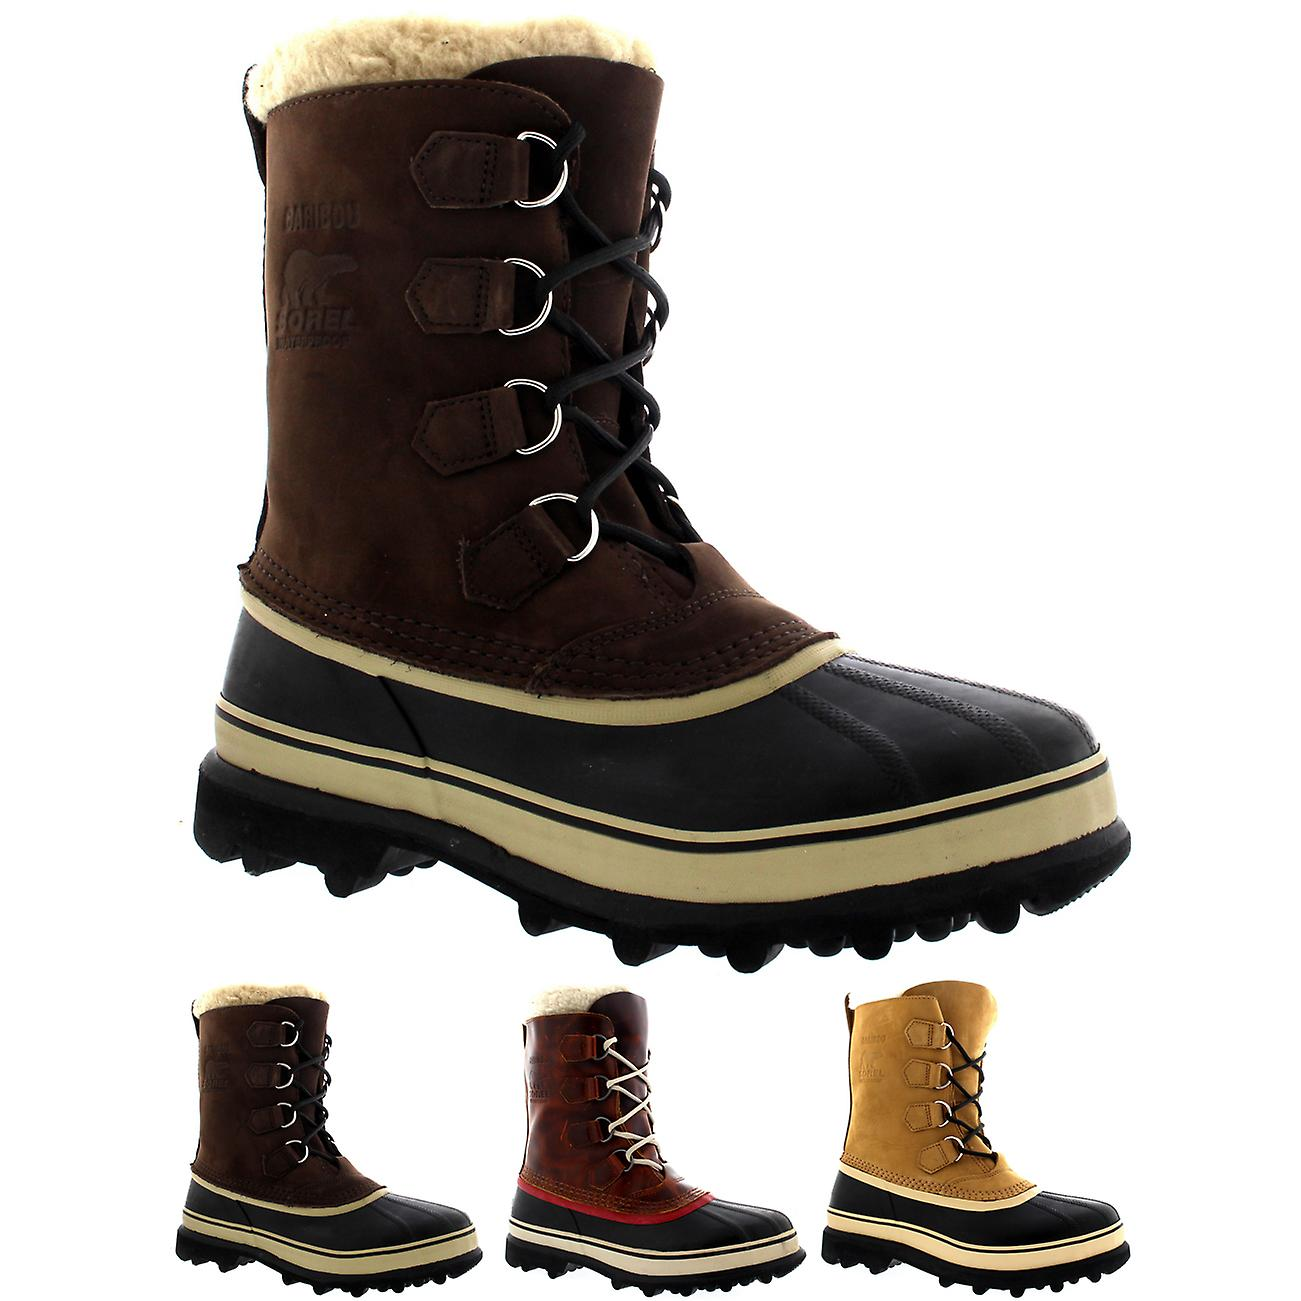 68df72aa191 Mens Sorel Caribou Winter Snow Waterproof Fleece Lined Mid Calf Boots UK  7-12